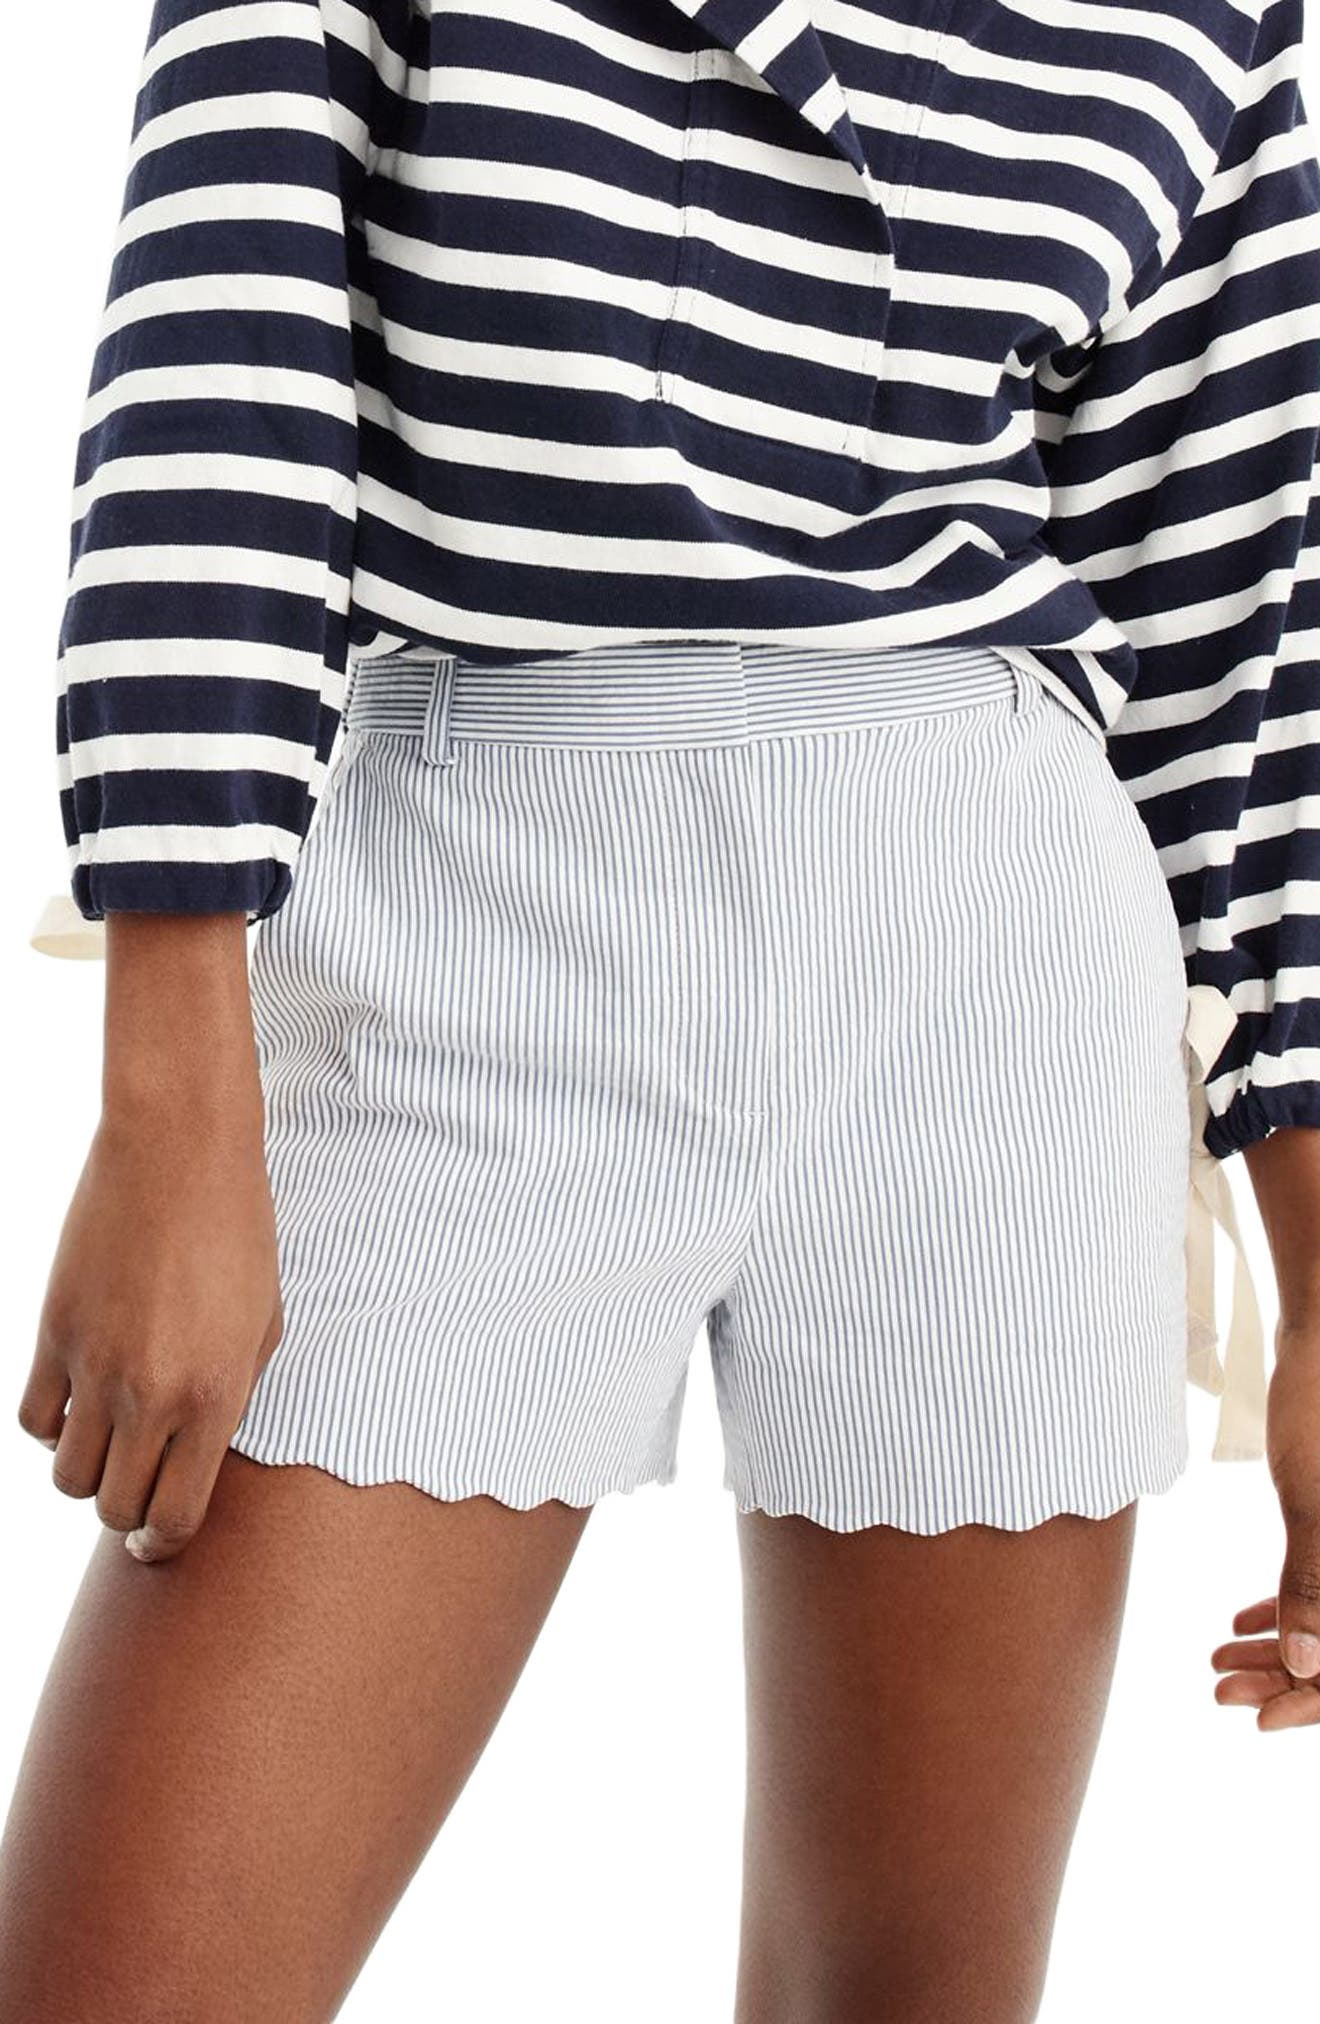 Fiesta Seersucker Scallop Hem Shorts,                             Main thumbnail 1, color,                             400